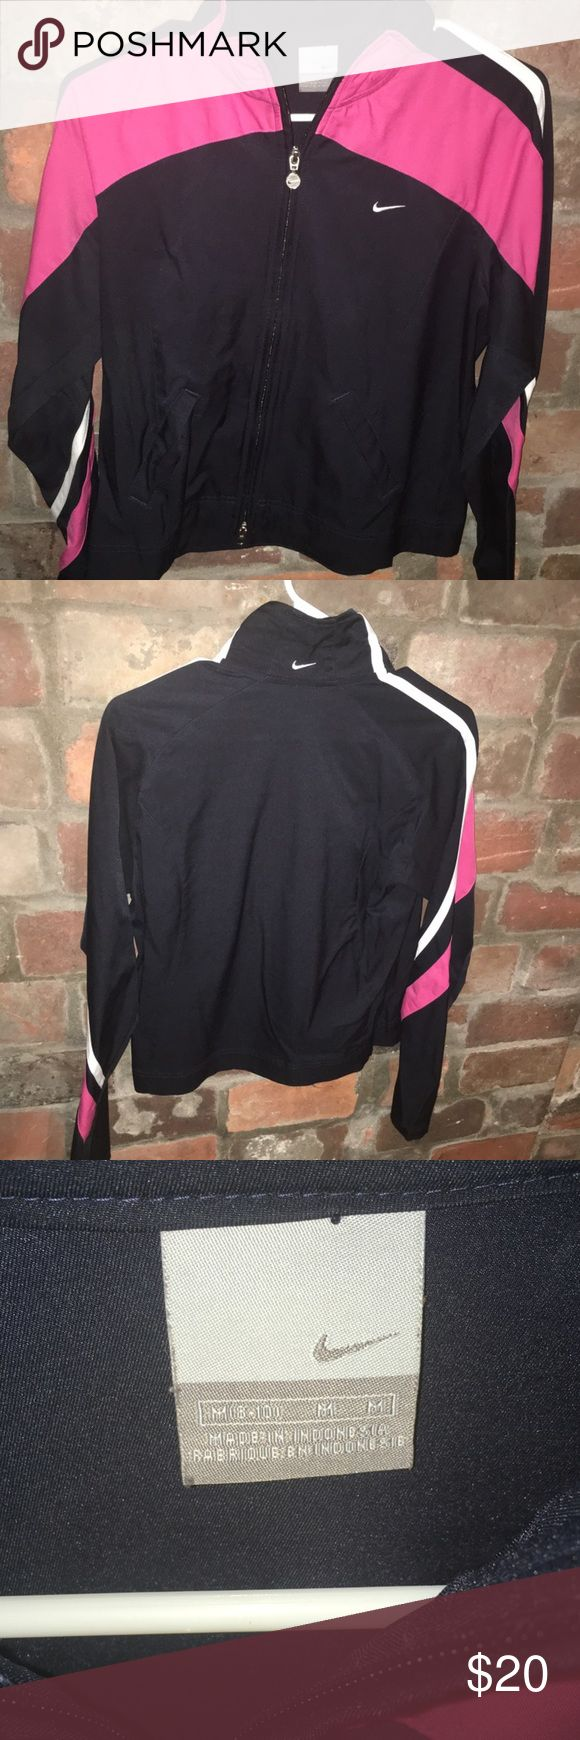 Women's Nike Windbreaker Women's Nike Windbreaker. Size Medium. No conditional issues. Very nice shape. Clean! Nike Jackets & Coats